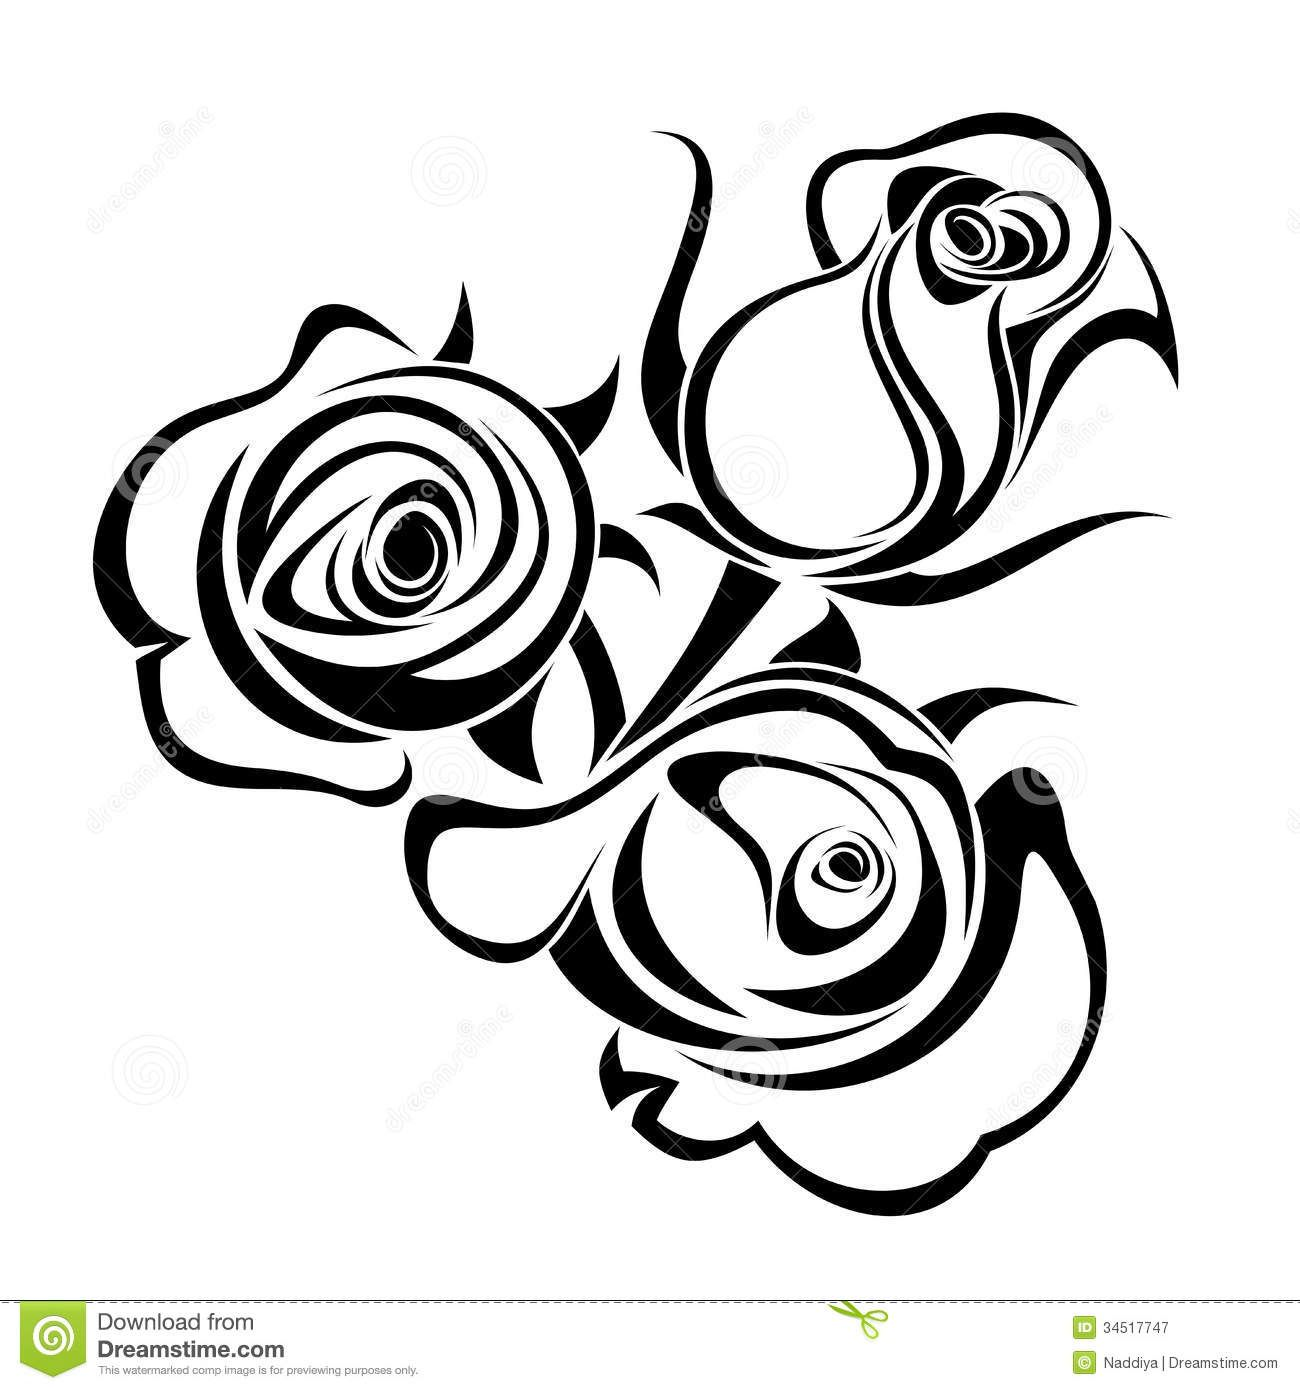 Rose Bouquet Clip Art Black And White Rose Buds Black Silhouettes Black Silhouette Rose Buds Silhouette Photos